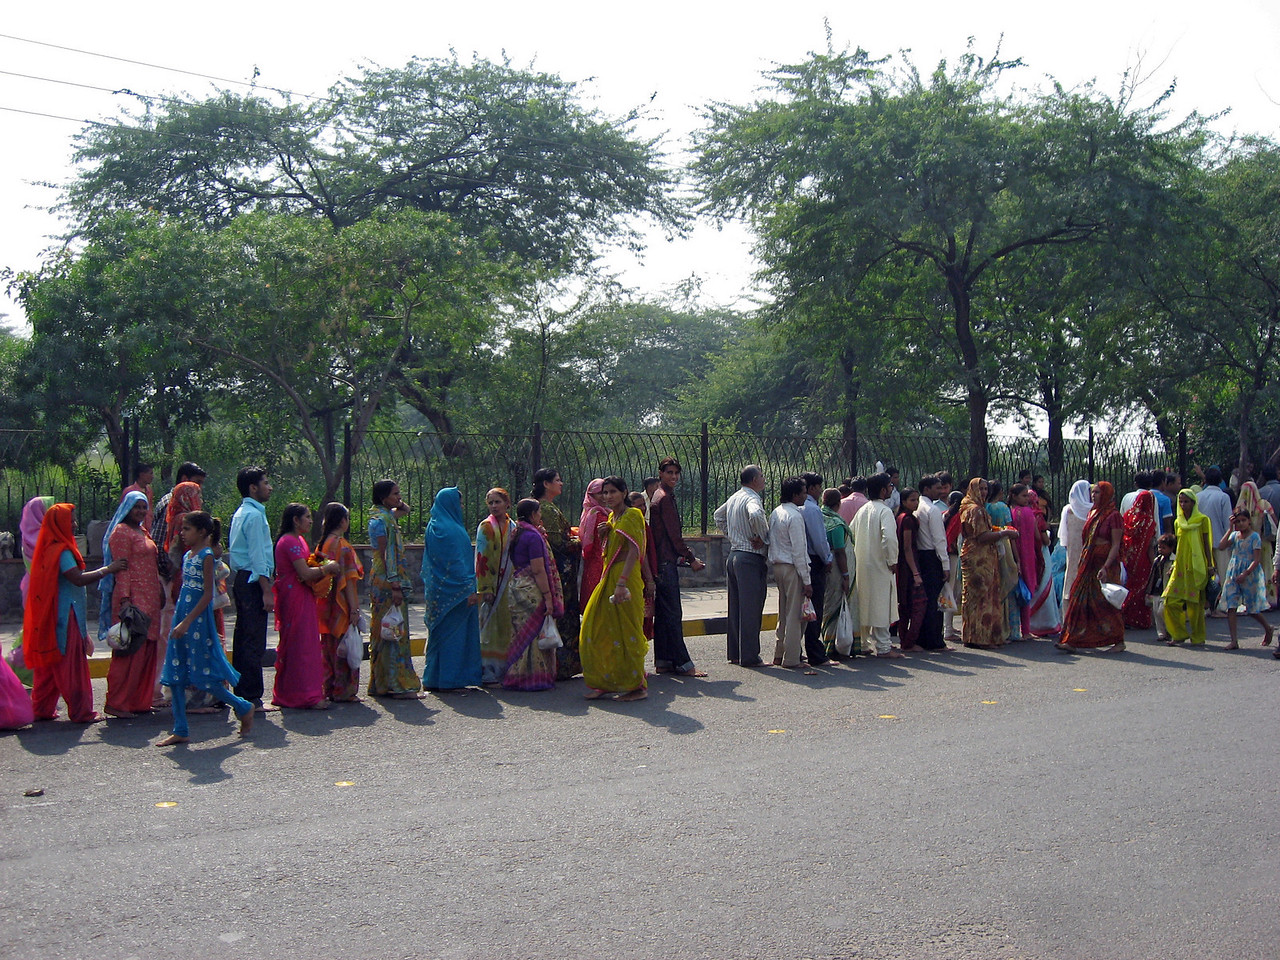 Long queue of folks waiting to enter the Lotus Temple